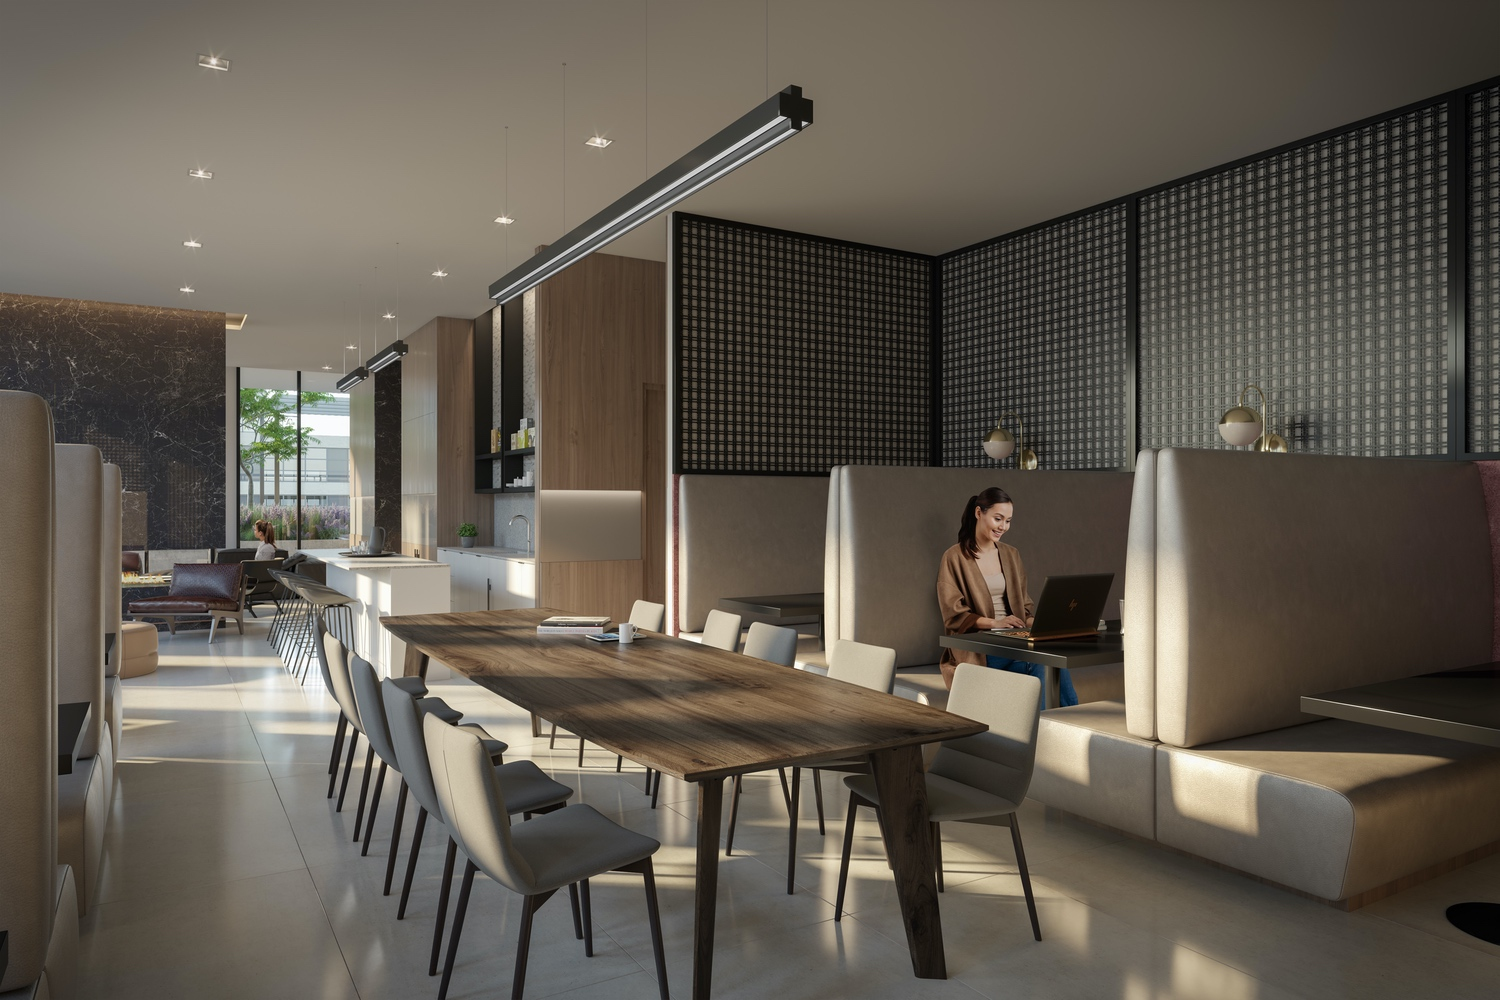 55 mercer condos co working space